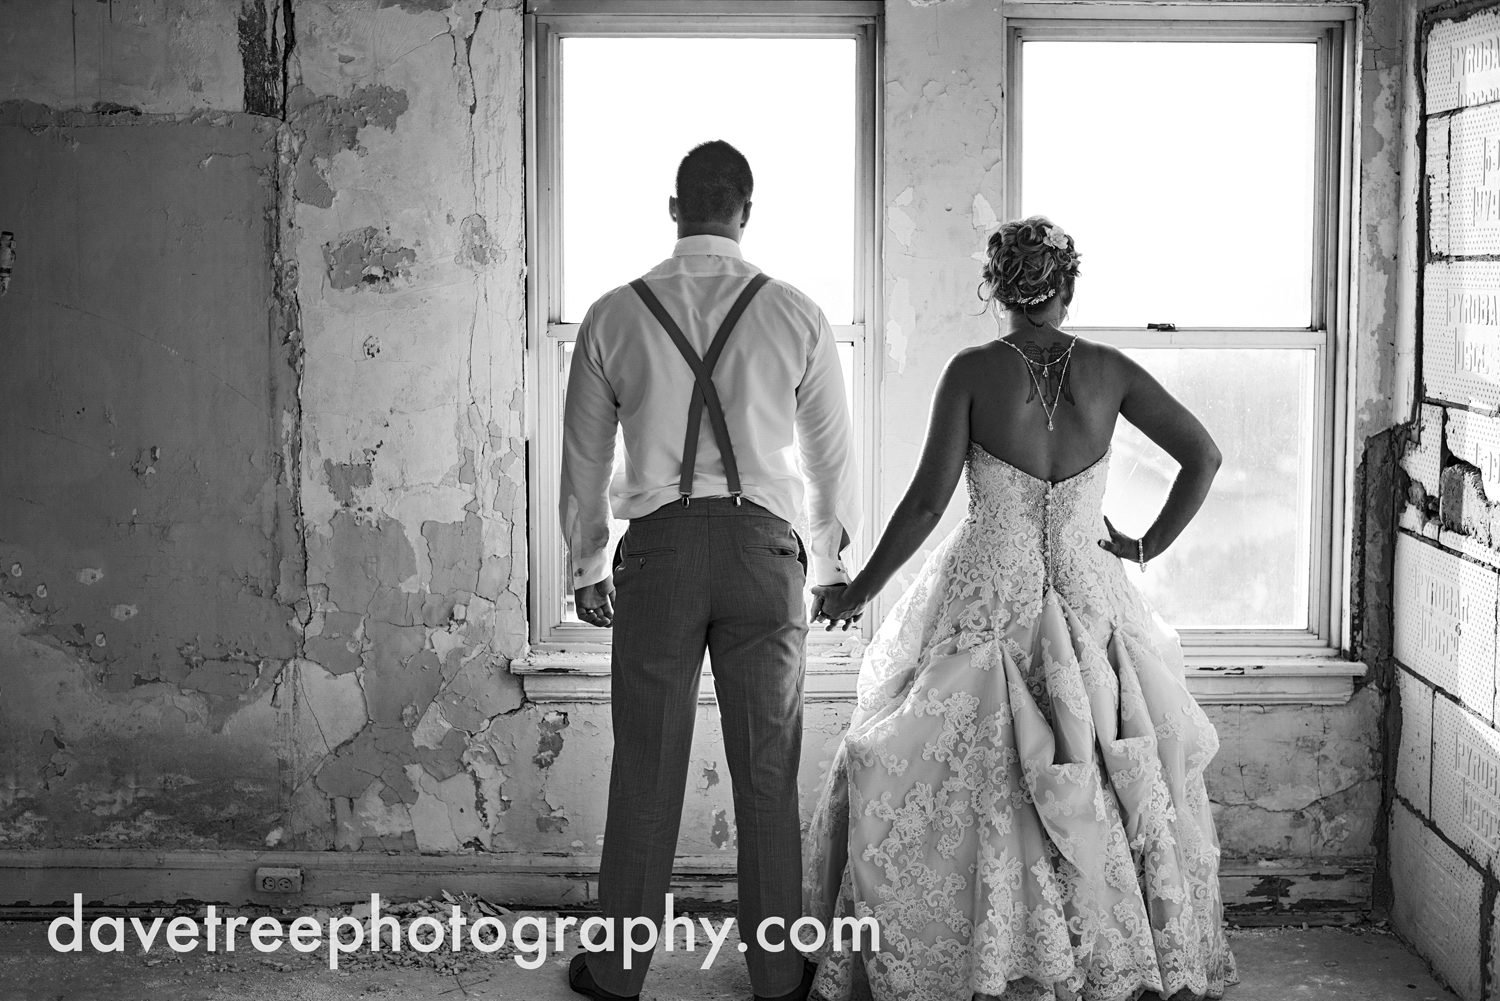 veranda_wedding_photographer_st_joseph_wedding_25.jpg